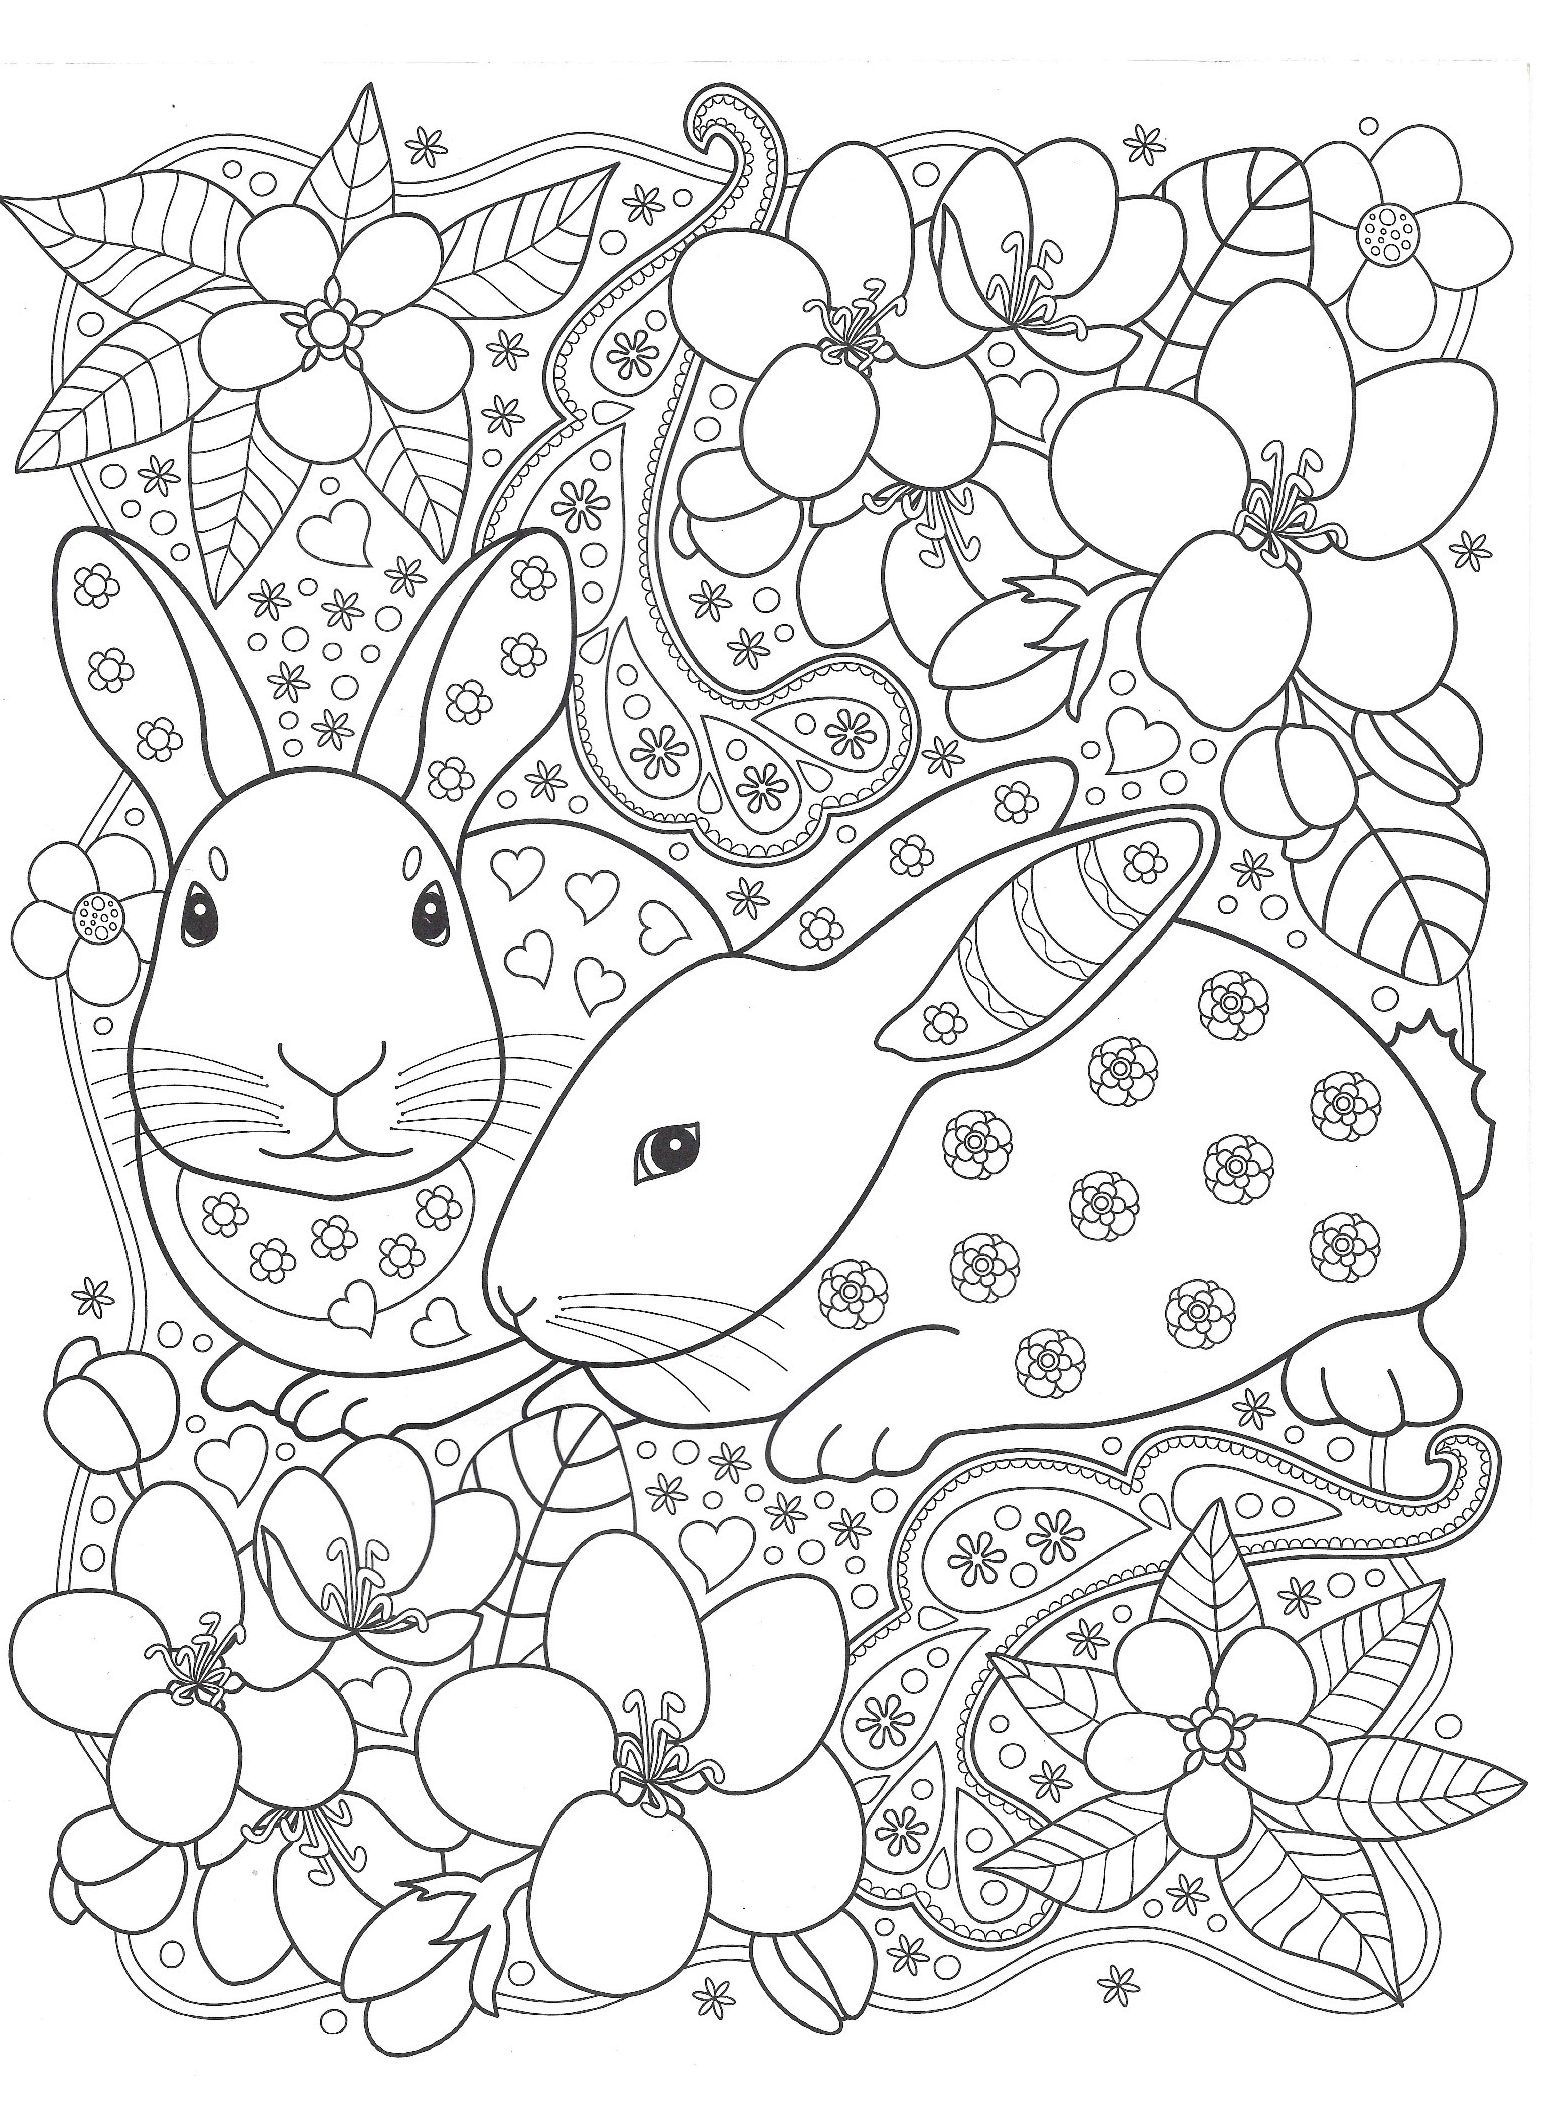 coloring pages for 9 year olds coloring pages for 9 year olds at getcoloringscom free pages 9 for coloring year olds